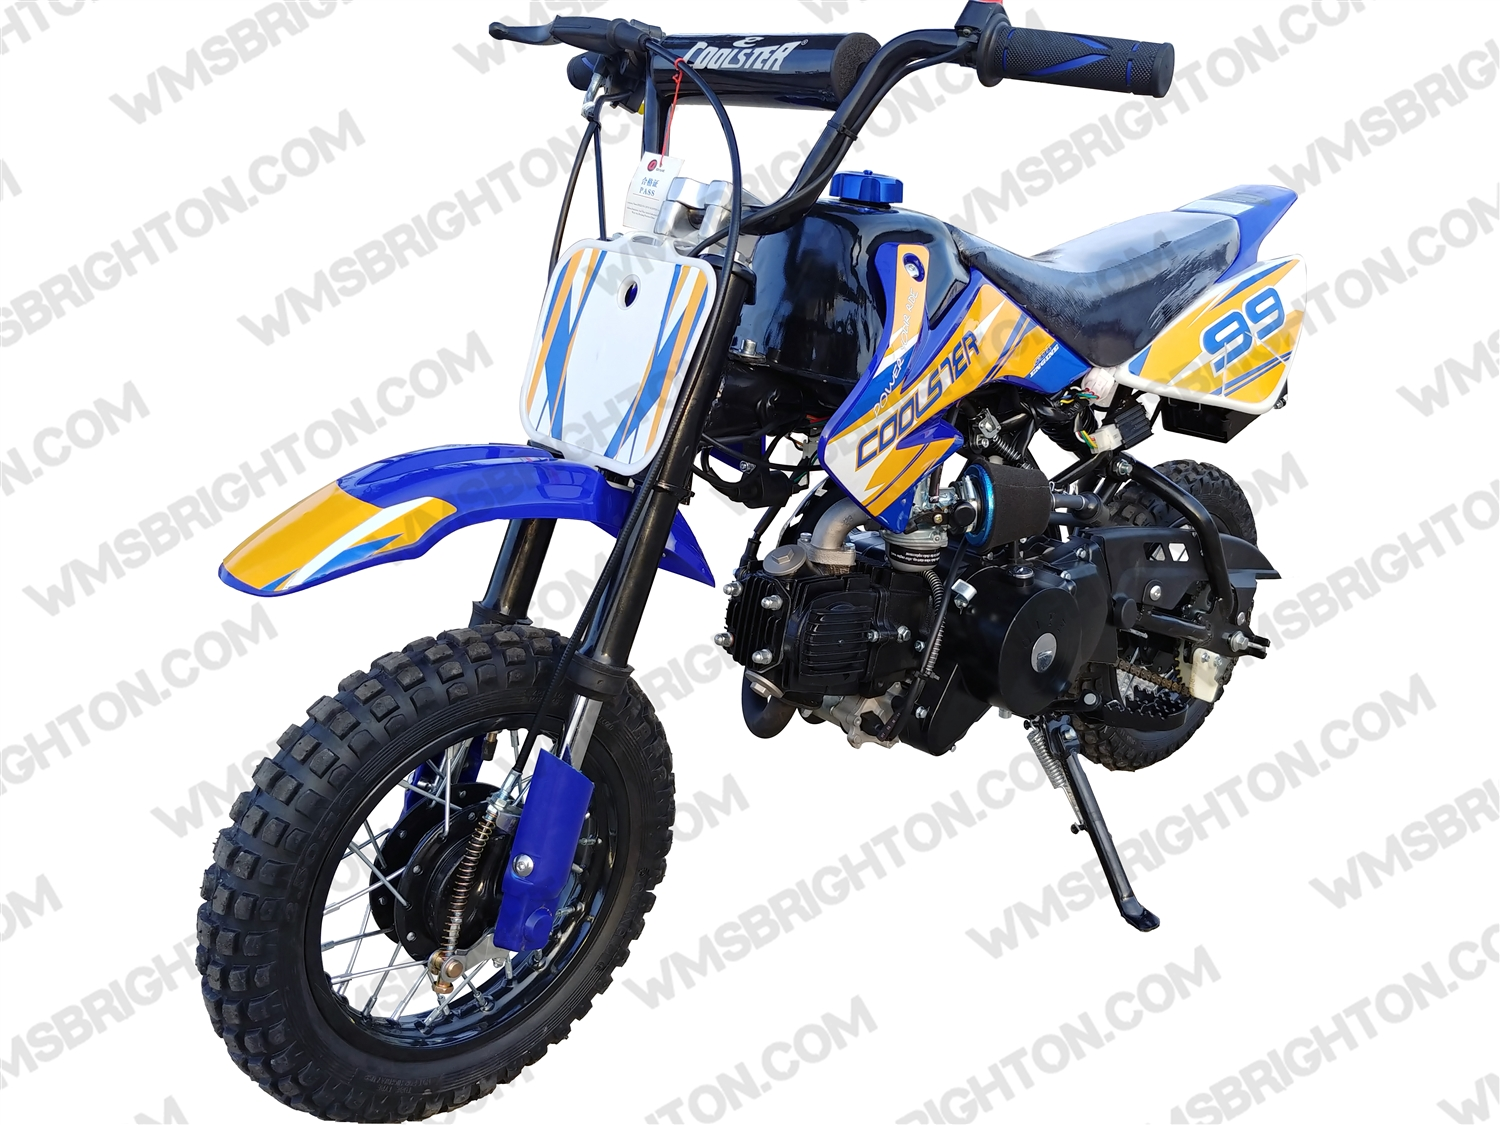 Coolster 213a full auto electric start 110cc dirt bike publicscrutiny Images